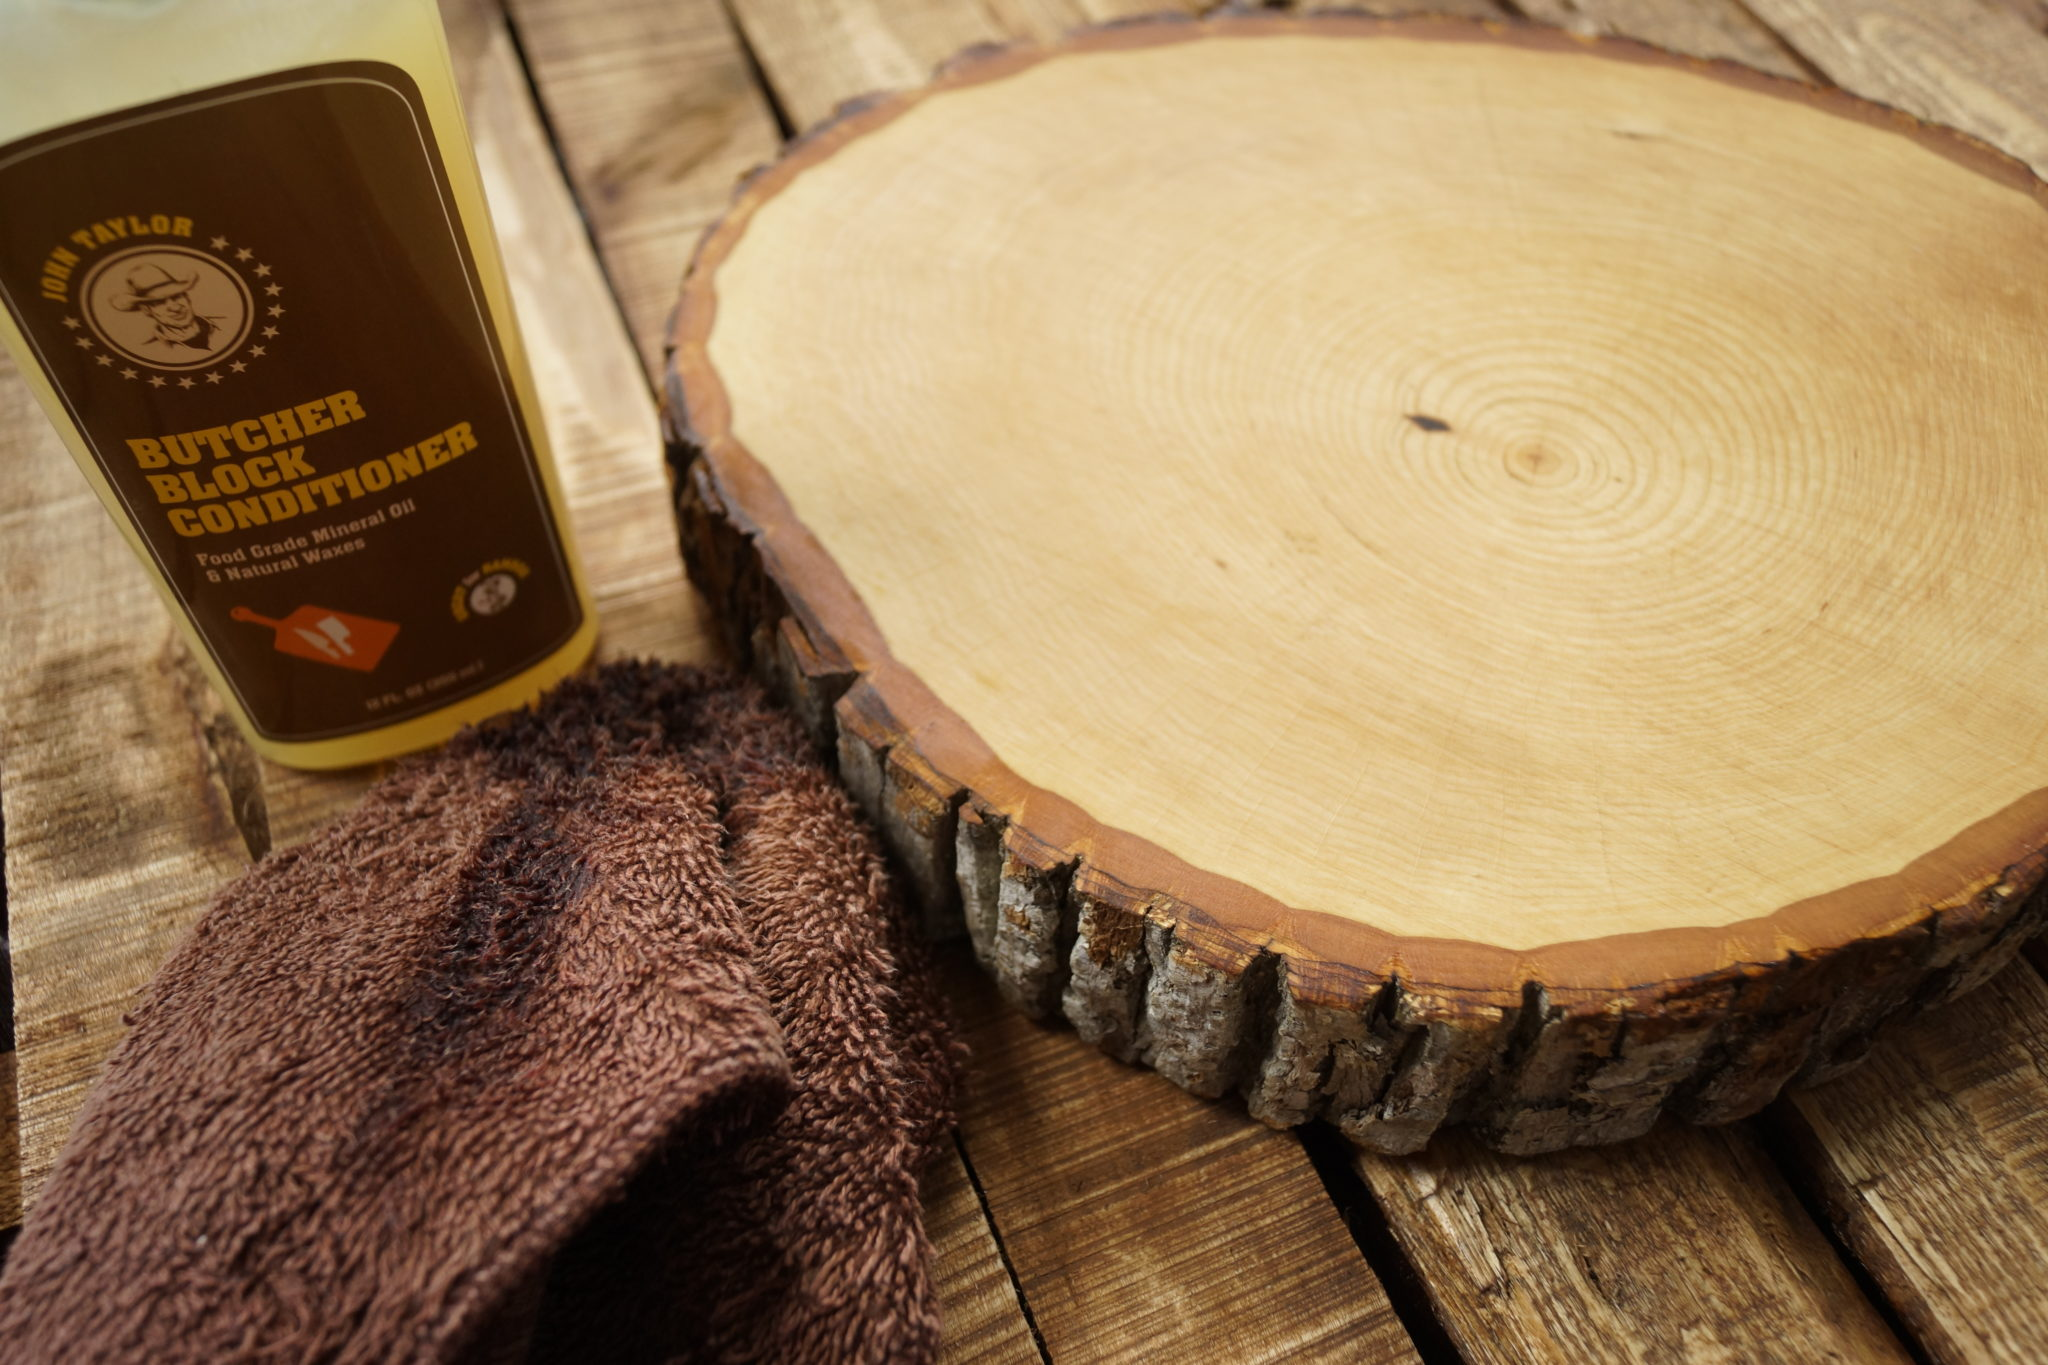 DIY: Do It Yourself - Wood Slice Serving Cutting Board (Sandpaper, Mineral Oil, Butcher Block Conditioner)